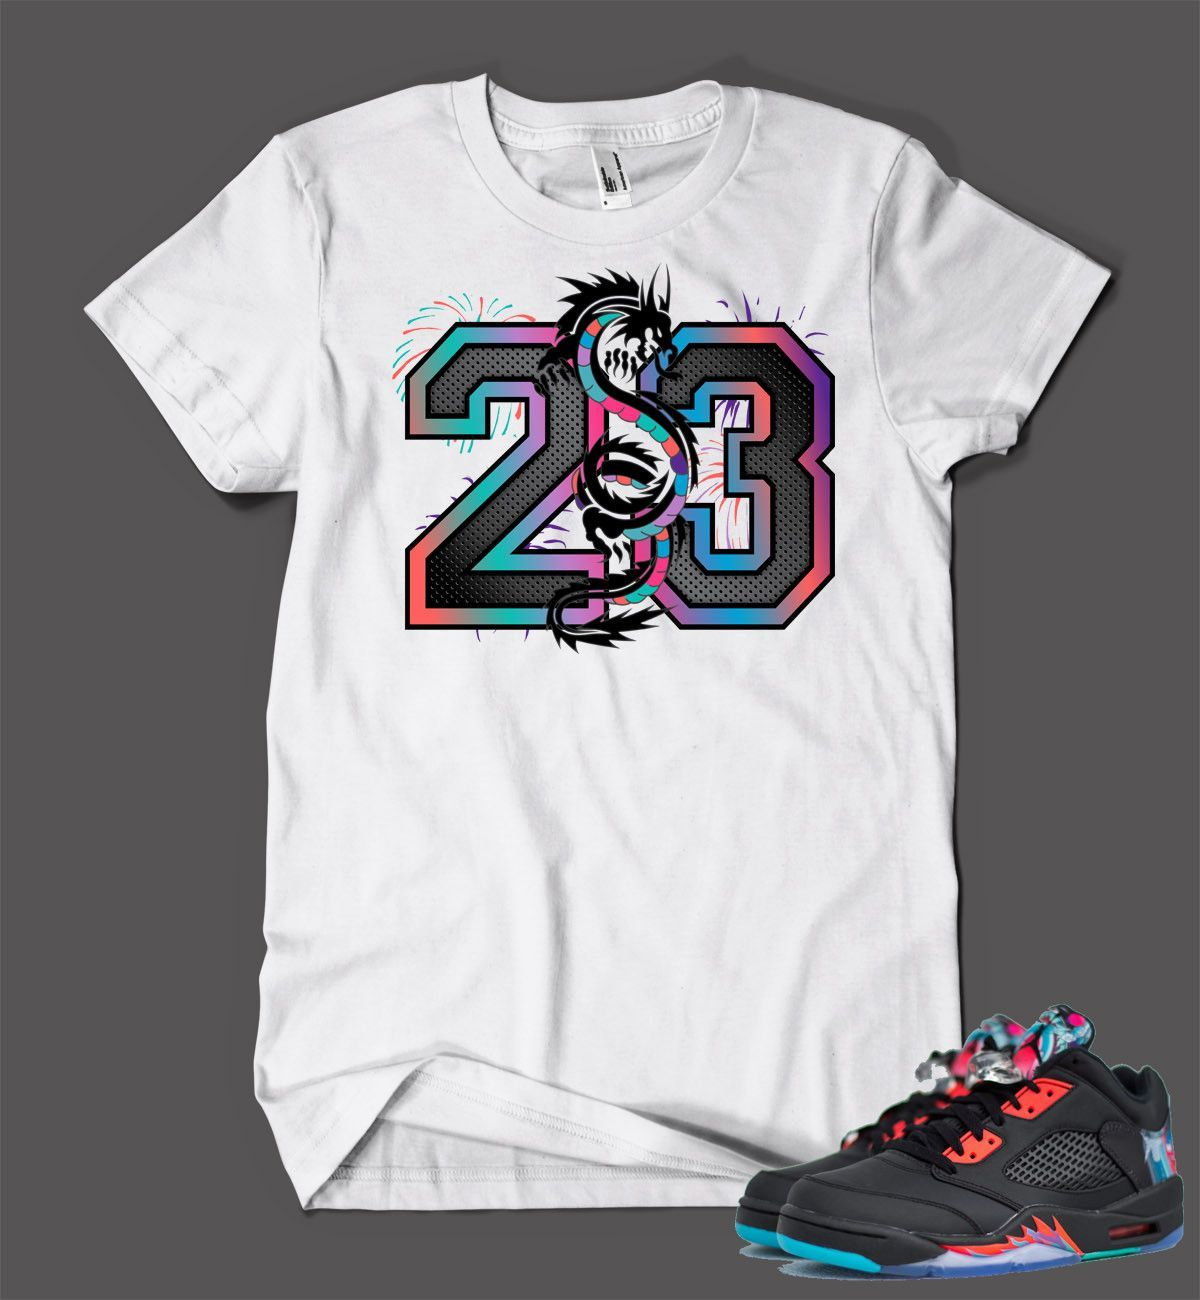 d55eb948abec T Shirt To Match Retro Air Jordan 5 Low Chinese New Year Shoe in ...